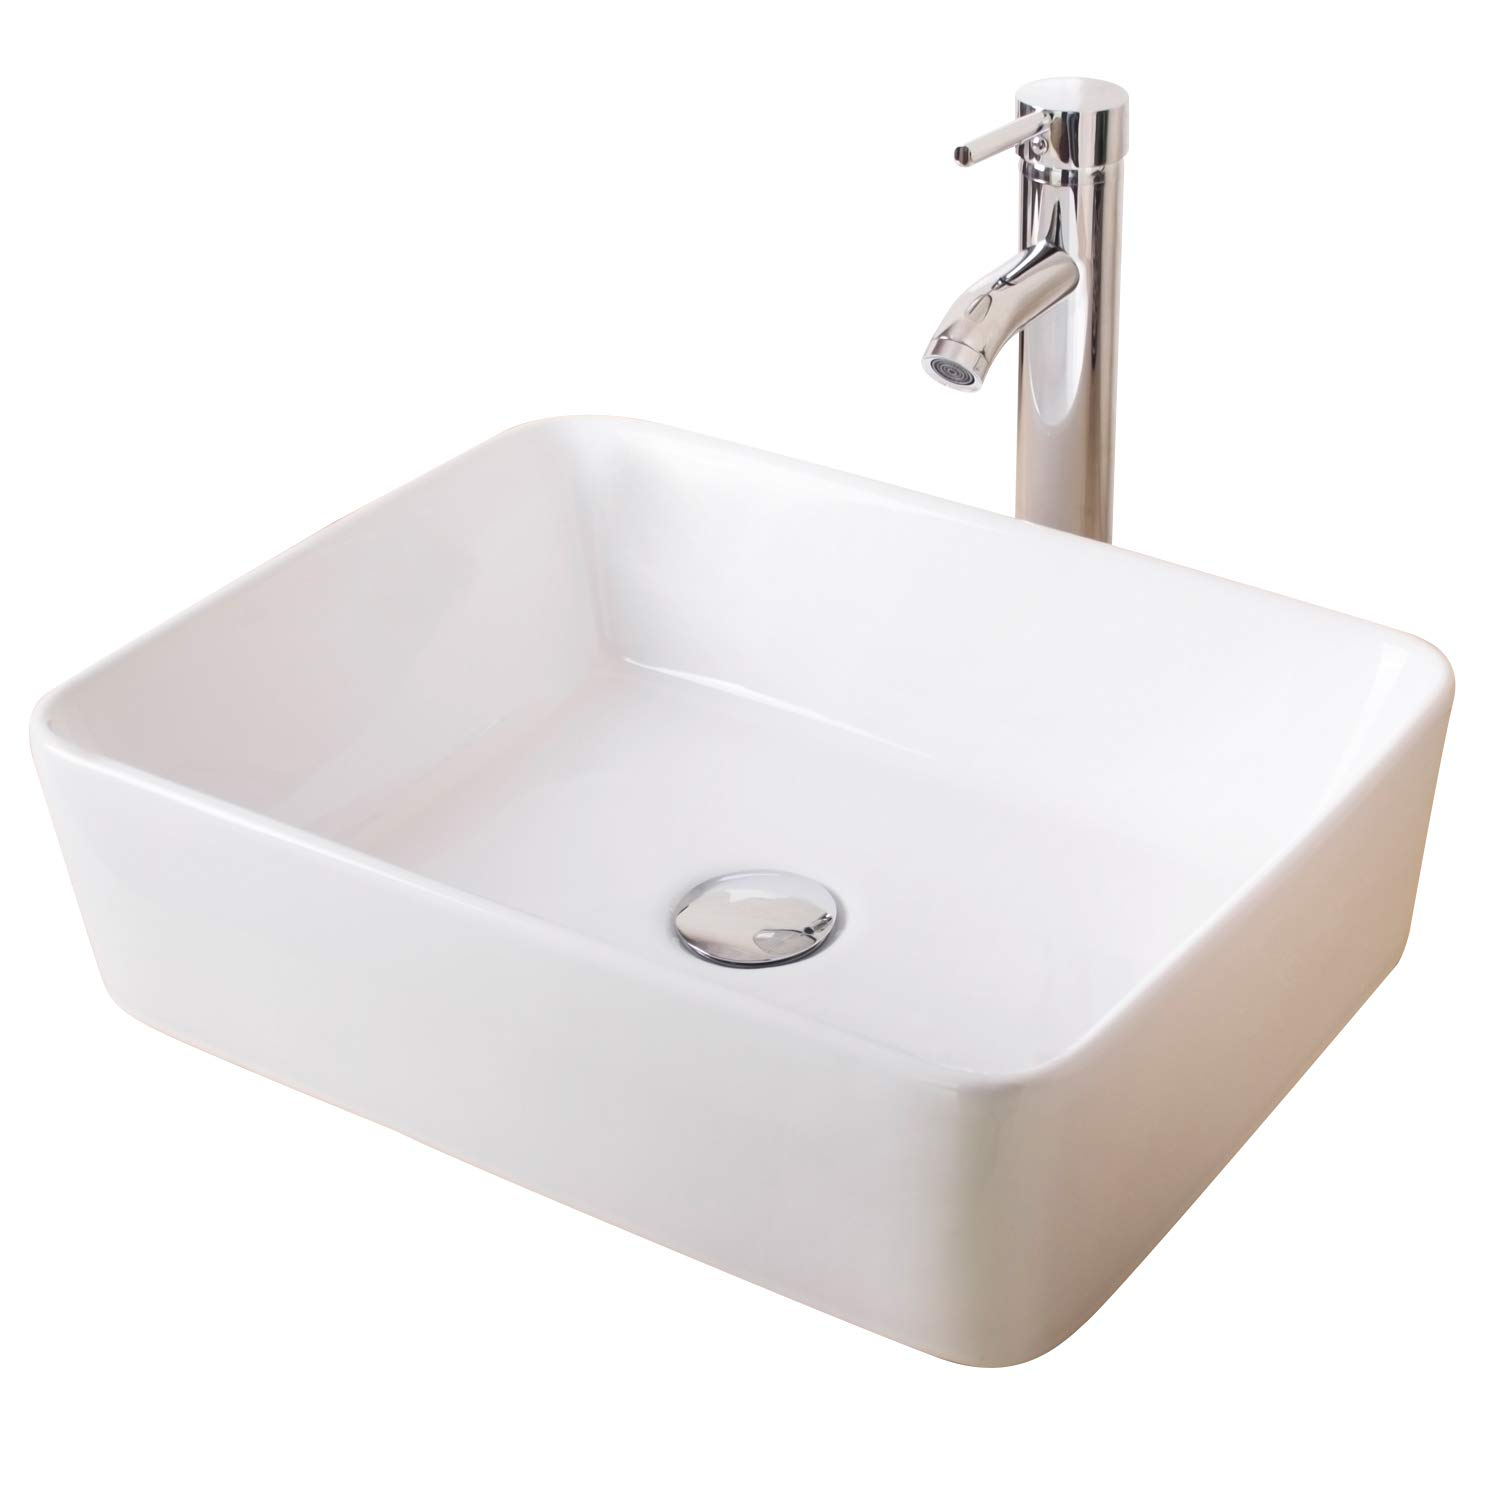 Walcut USBR1028 Bathroom Rectangle White Lavatory Porcelain Ceramic Vessel Vanity Sink Art Basin & & Chrome Faucet